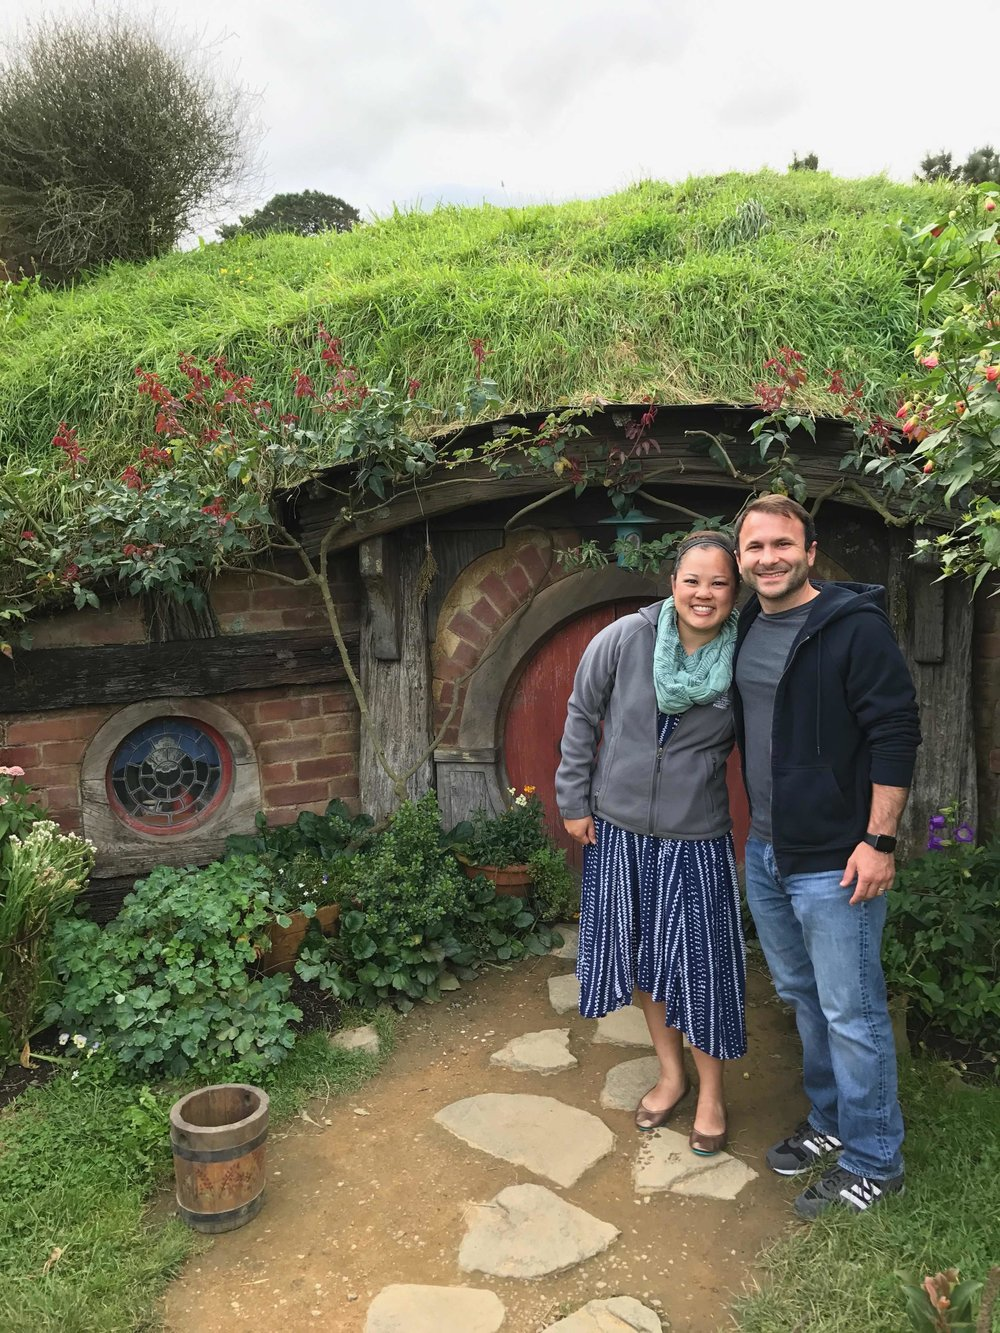 Visiting the Shire!